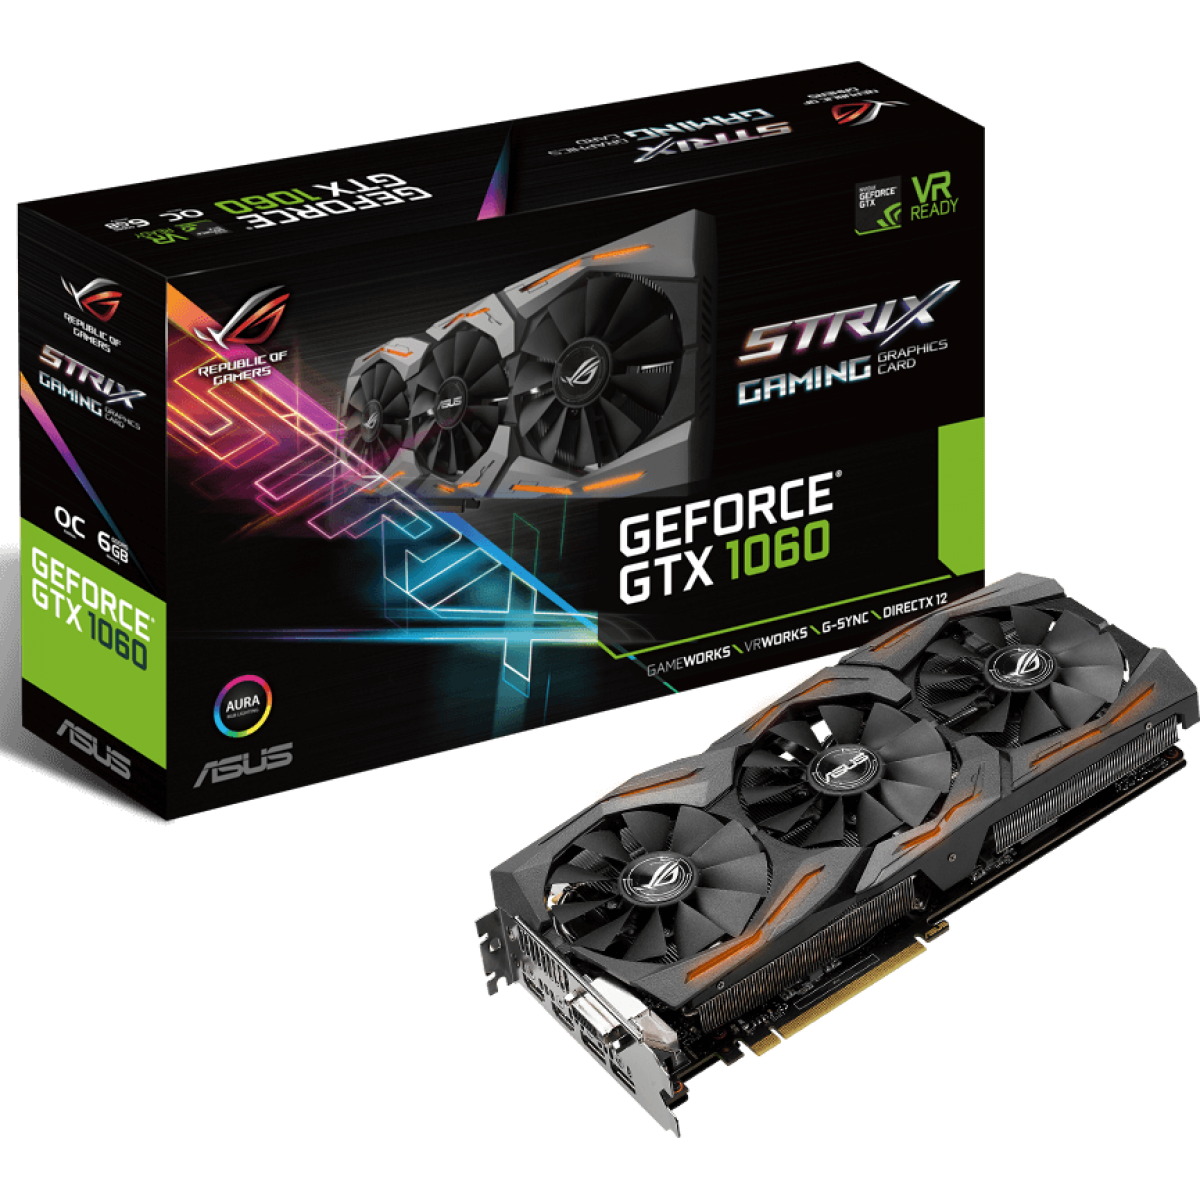 Placa de Video Nvidia GTX1060 6GB Asus Strix 192Bits GTX1060-O6G-GAMING - 90YV09Q0